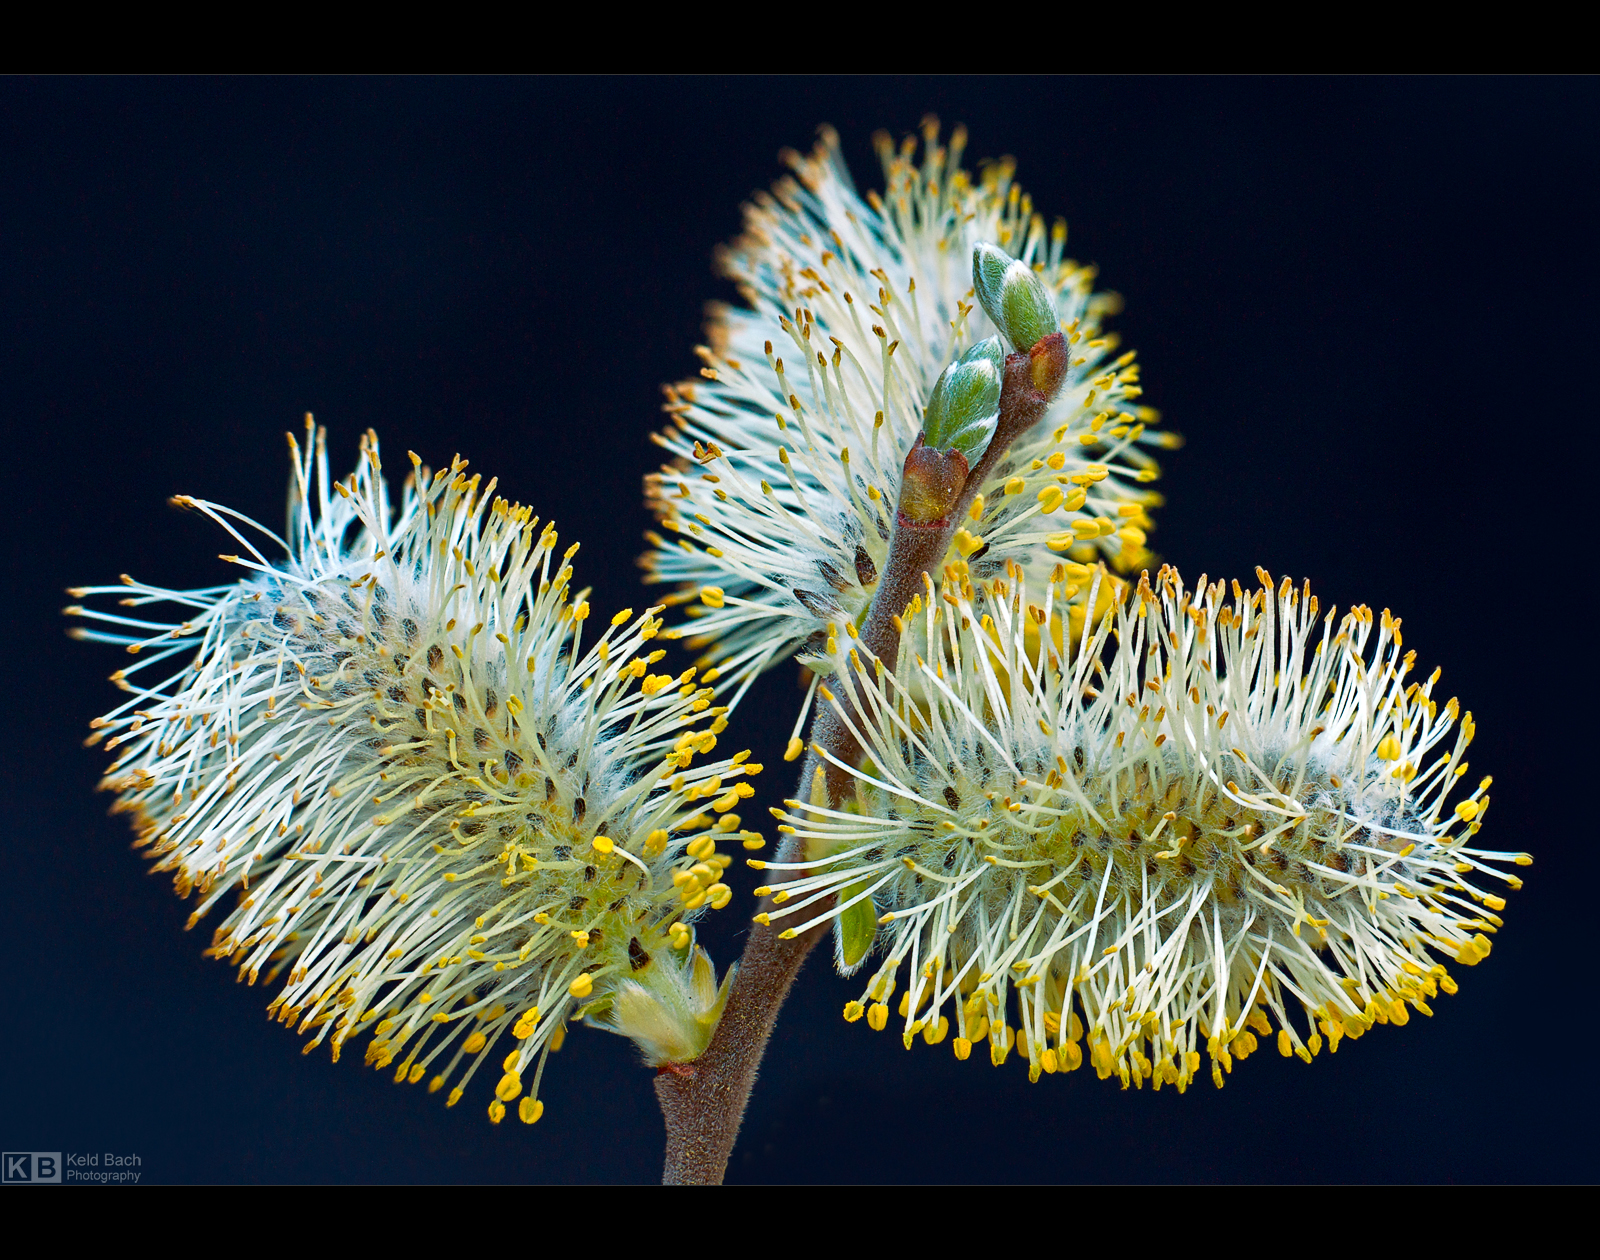 Blooming Catkins by KeldBach